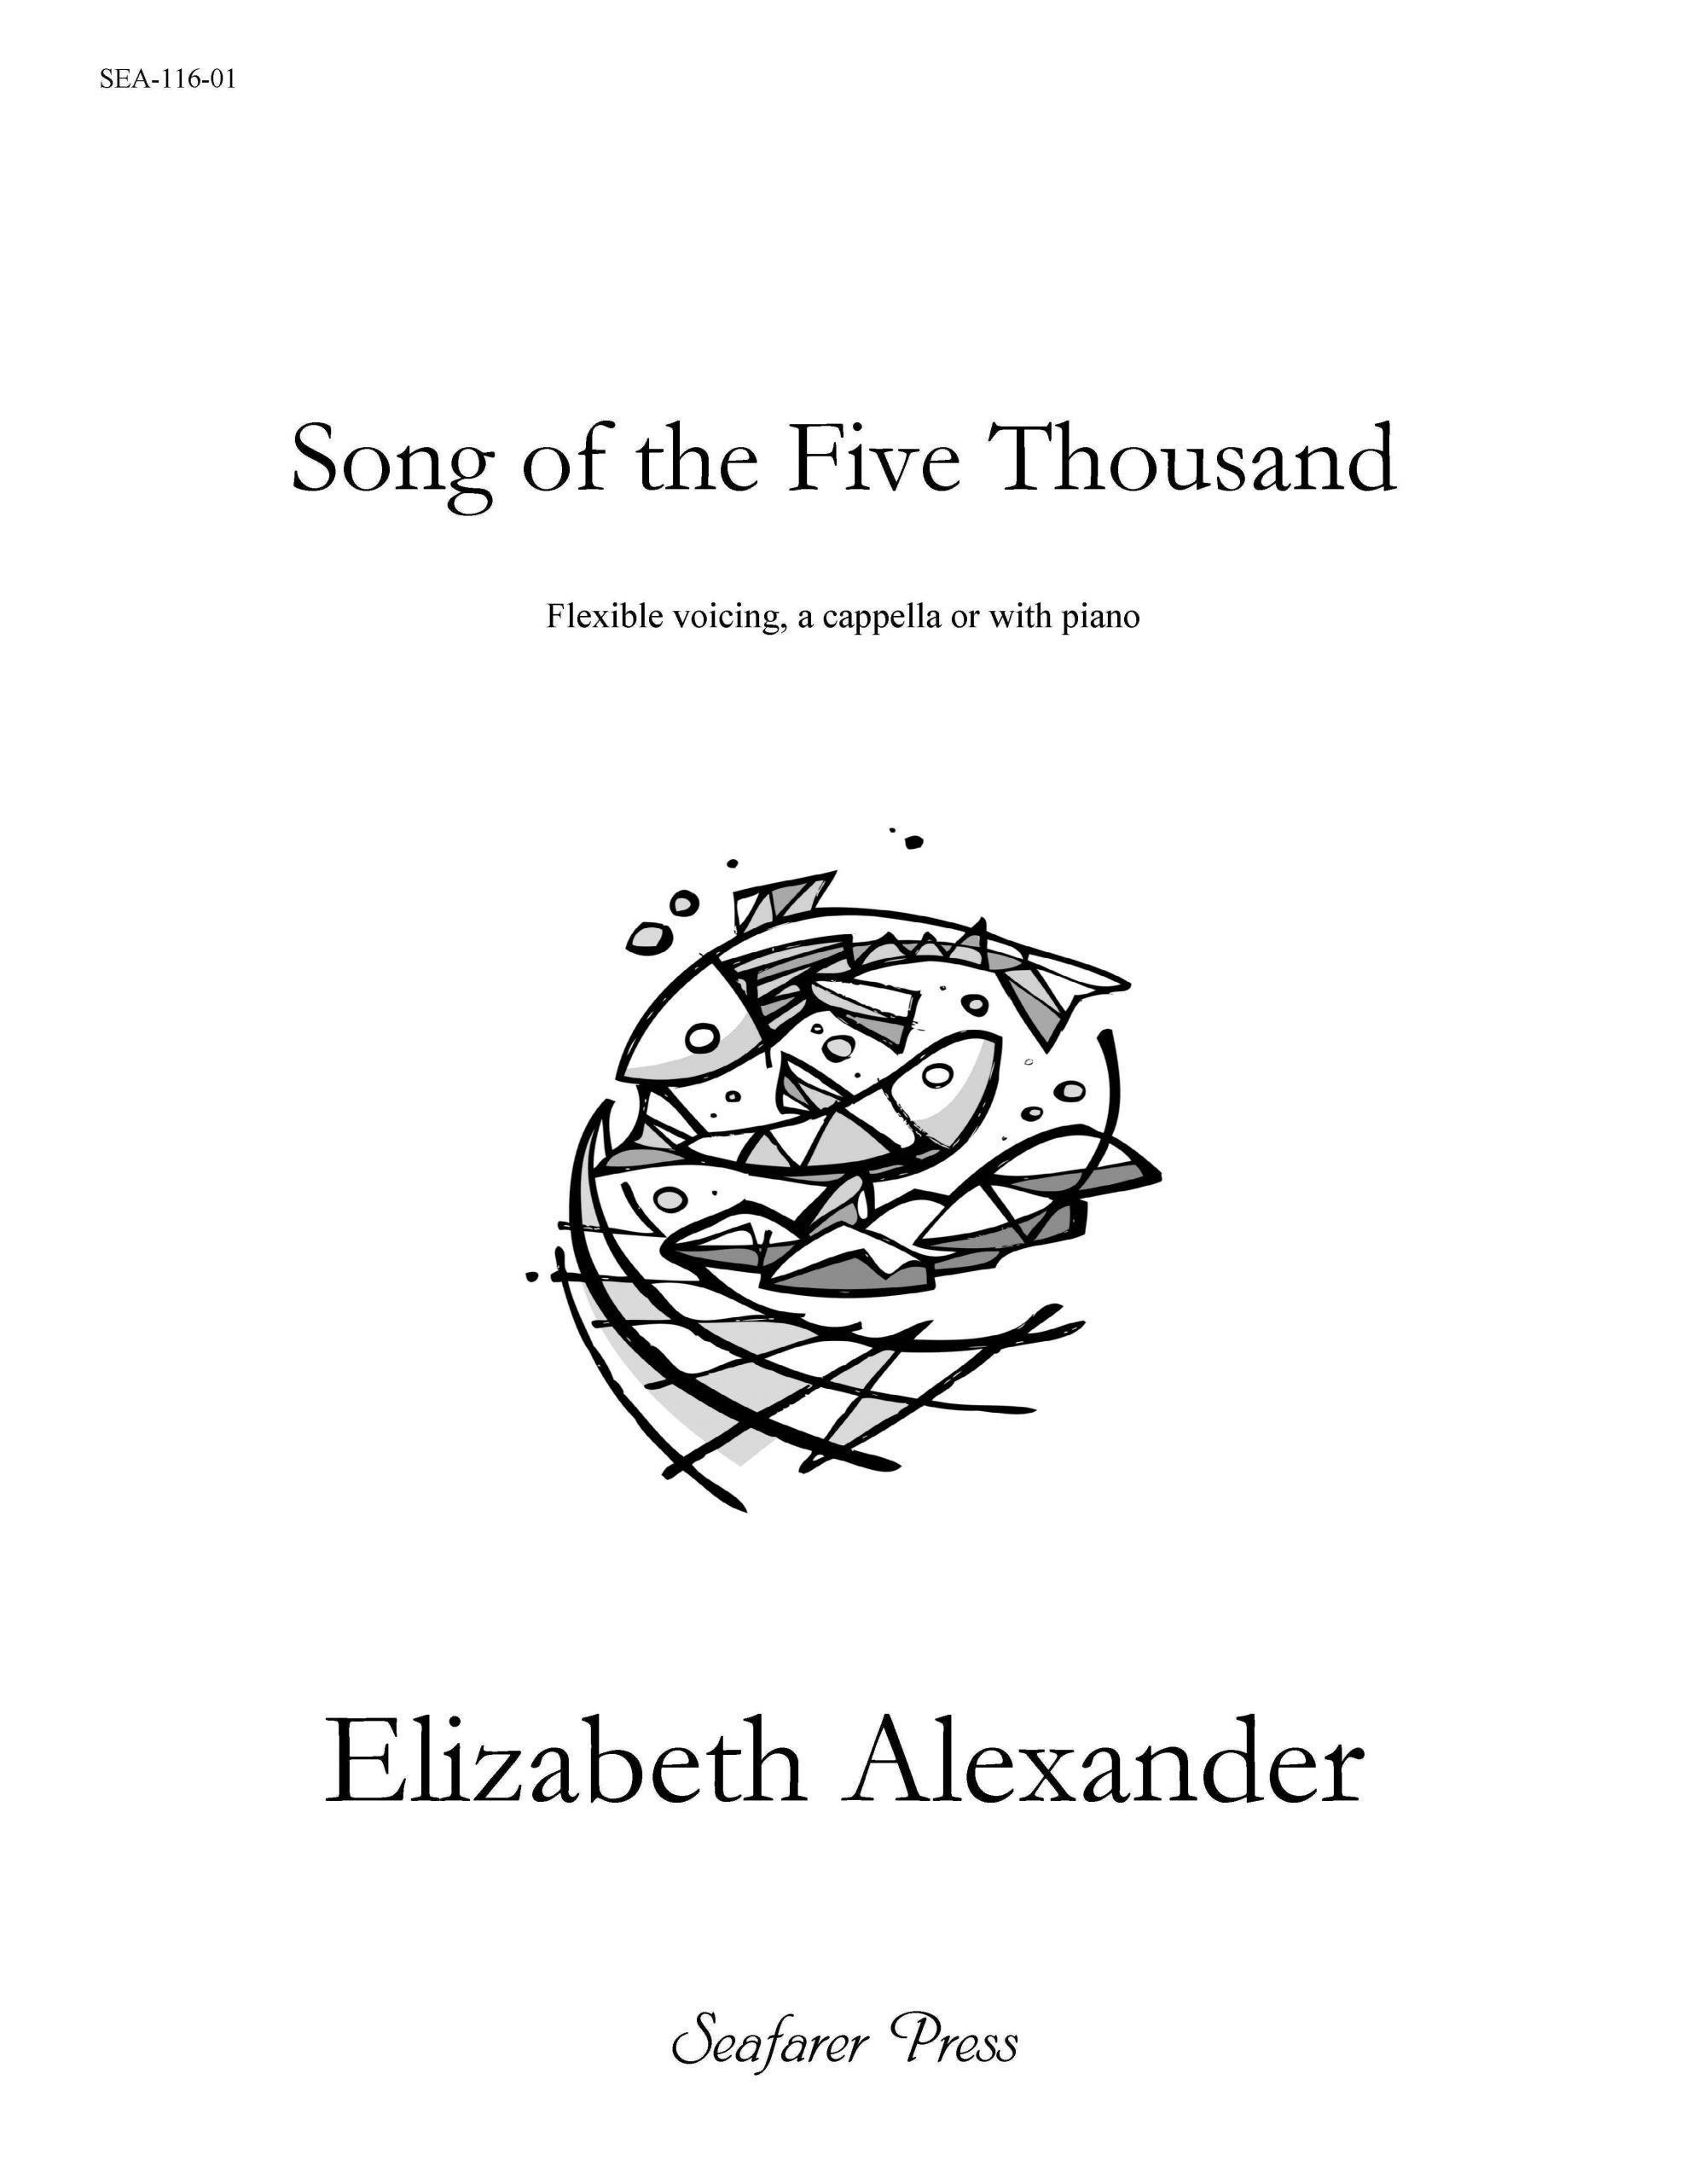 SEA-116-01 - Song of the Five Thousand